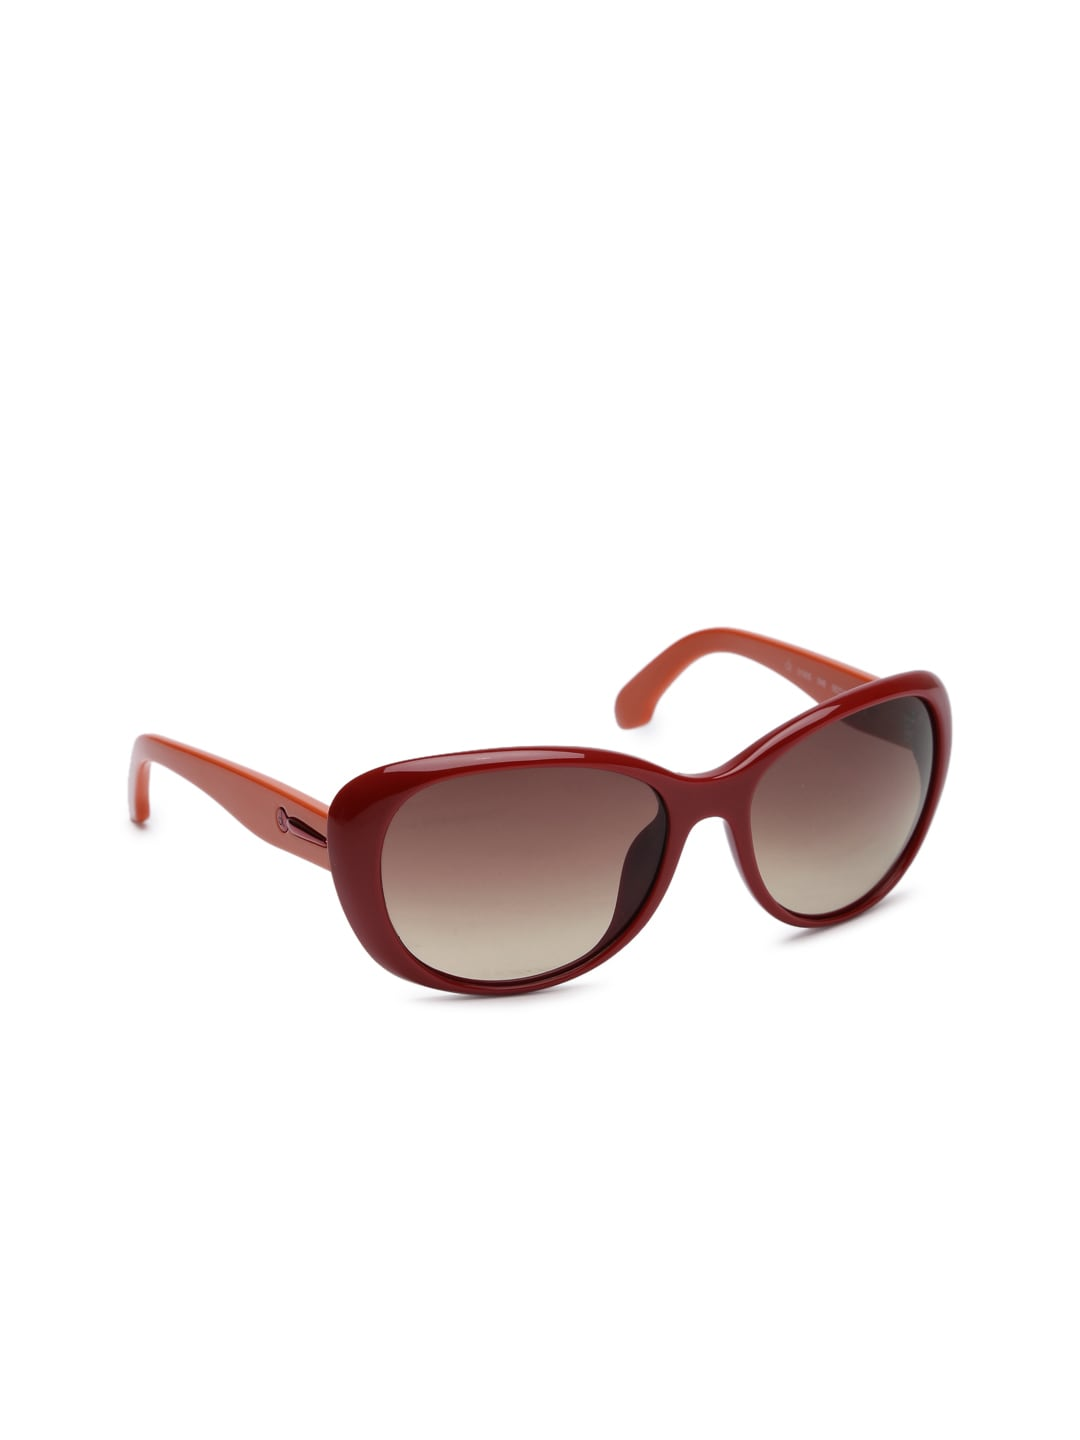 8f110eb53d331 Sunglasses Calvin Klein And - Buy Sunglasses Calvin Klein And online in  India